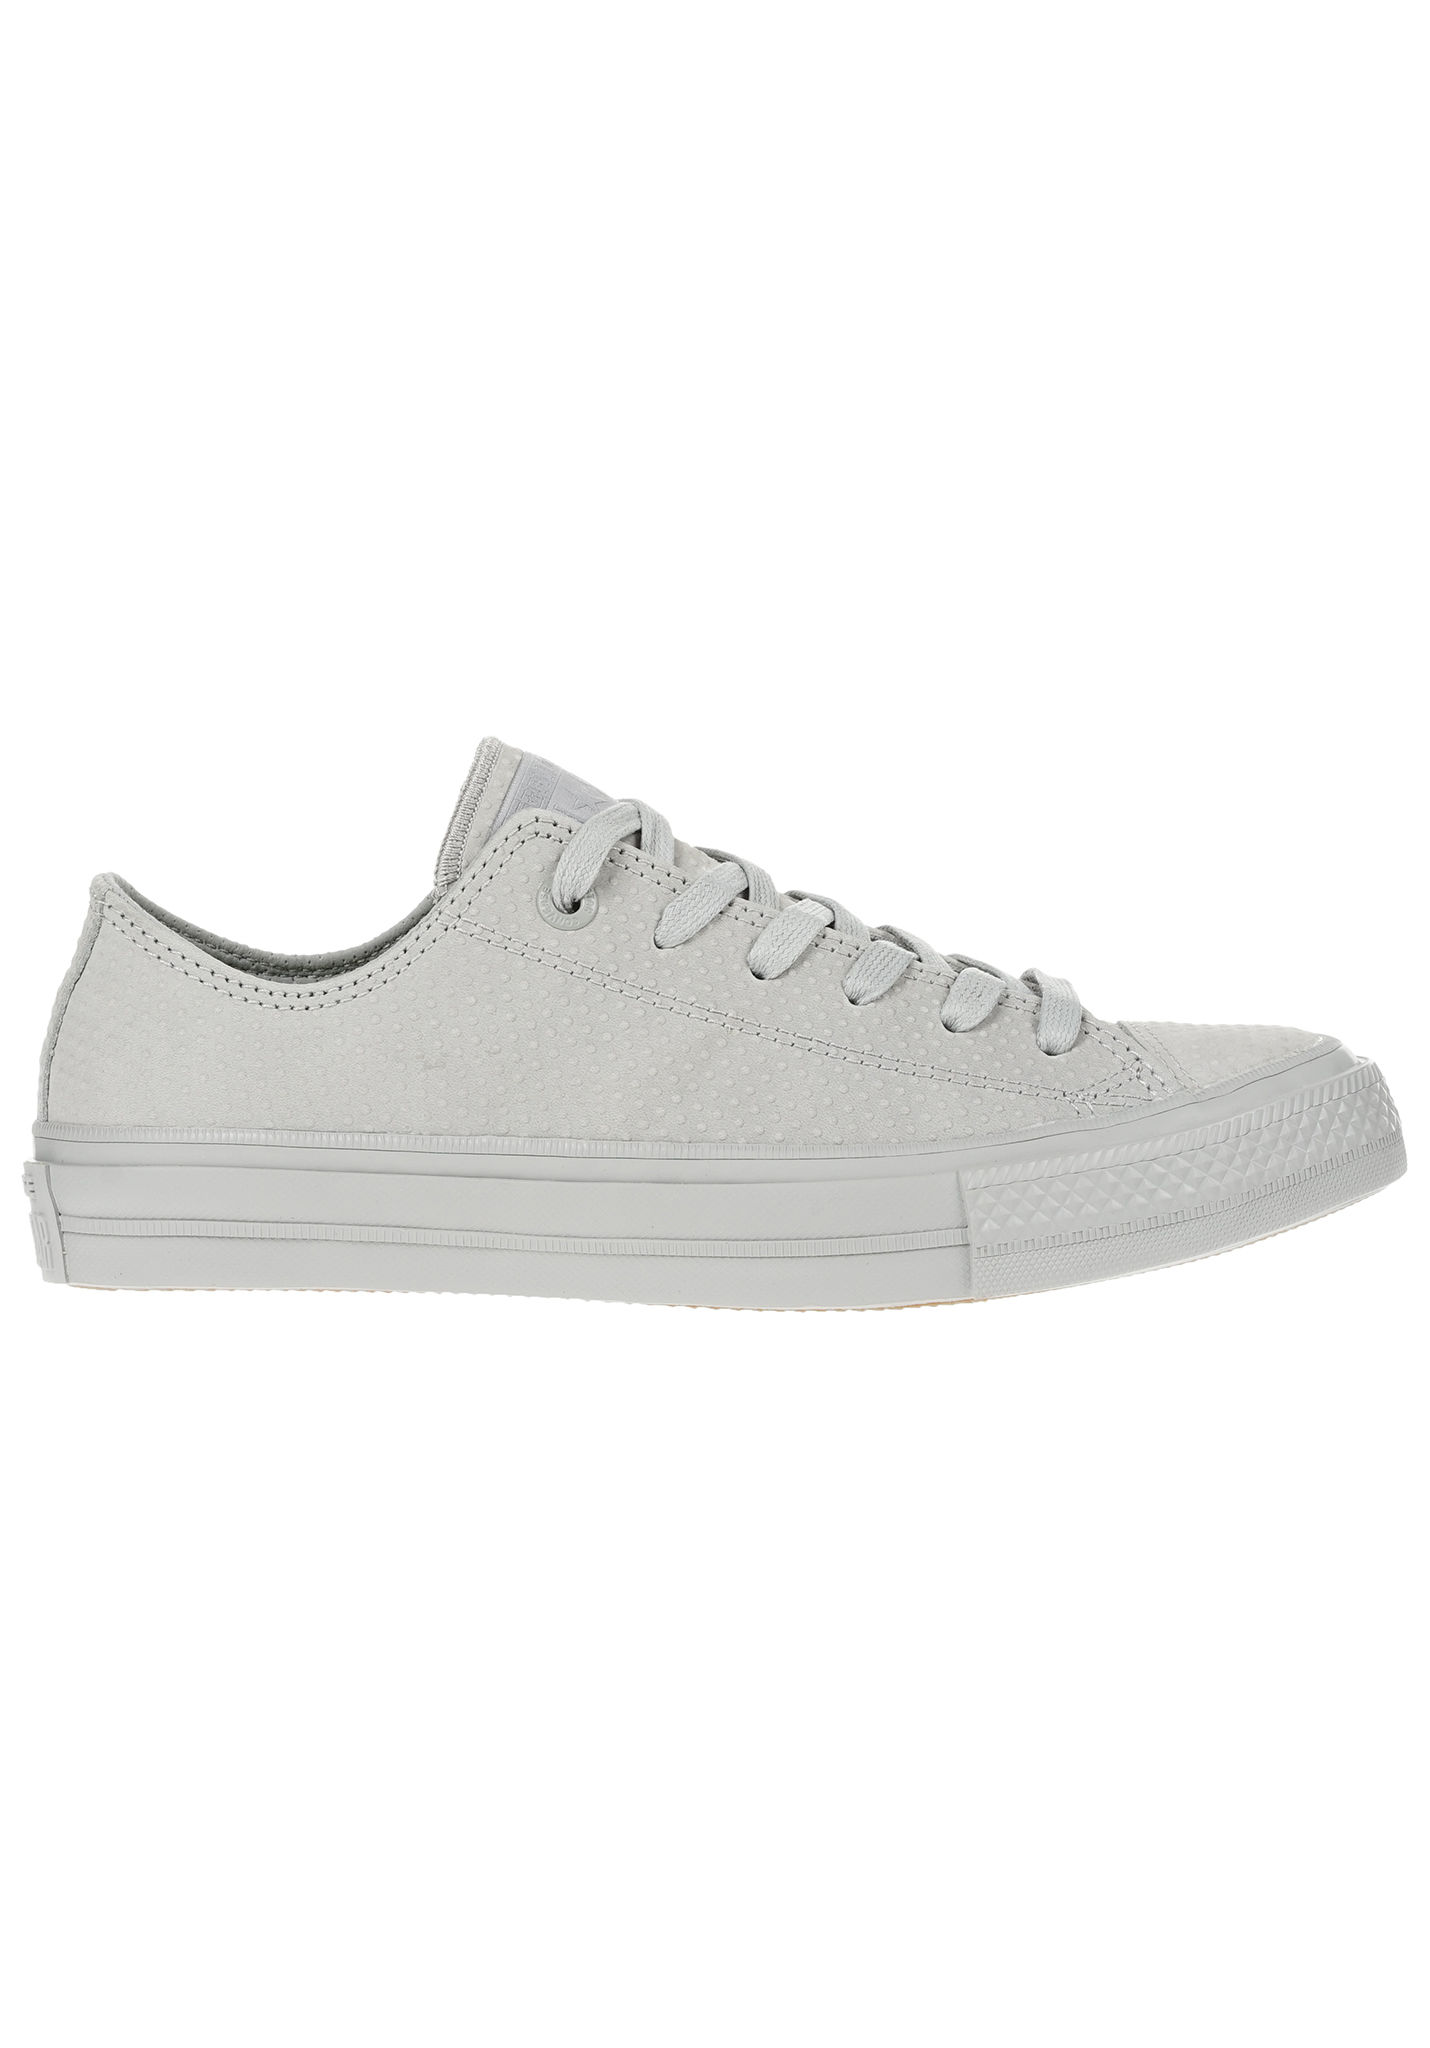 1f619a86b34cb Converse Chuck Taylor All Star II Ox - Sneakers - Grey - Planet Sports